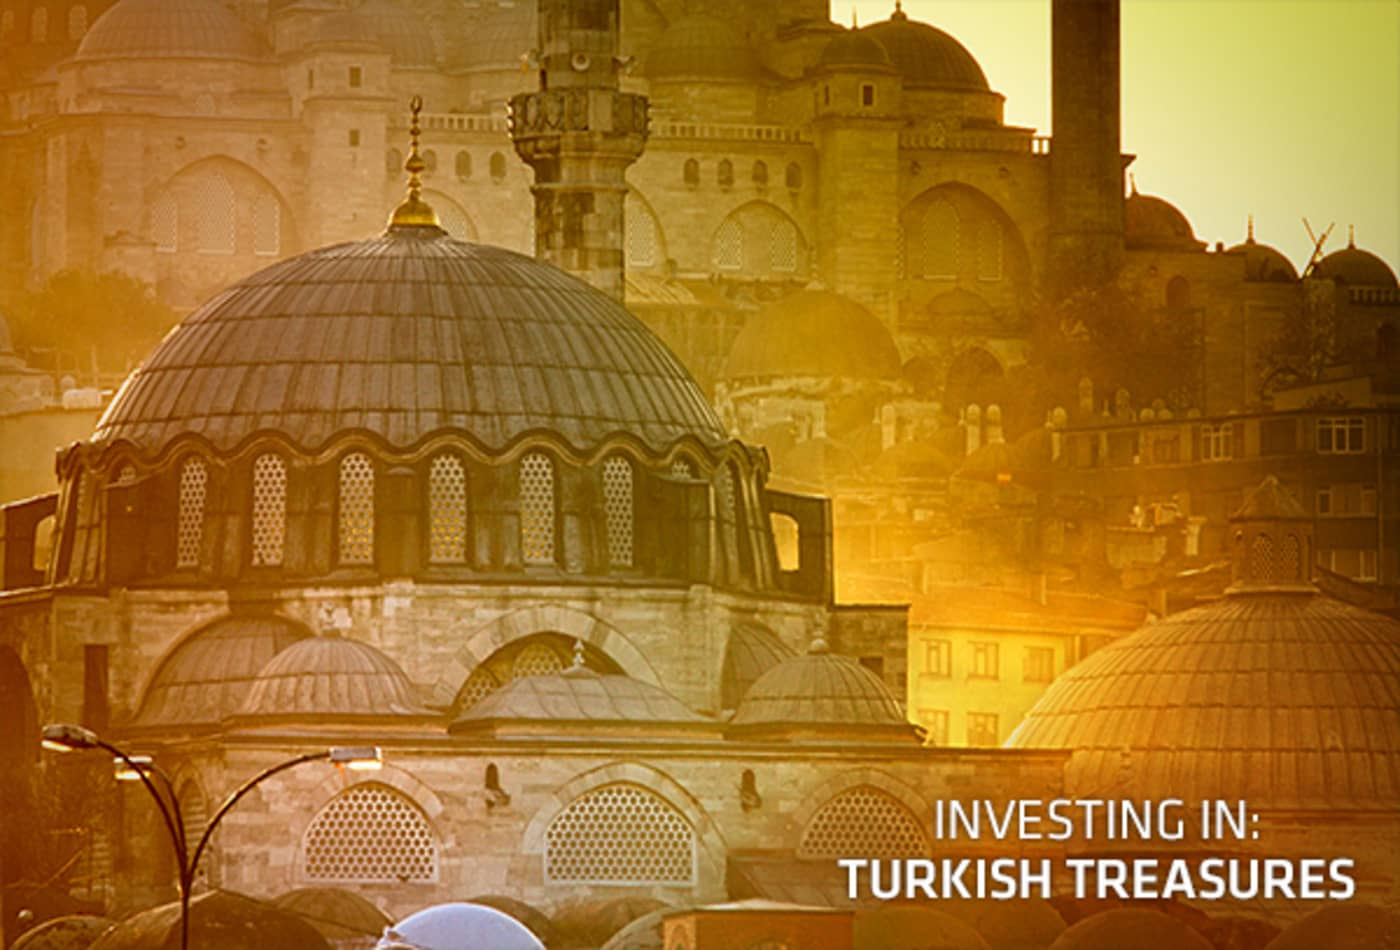 48743805 Investing-in-turkish-treaures-cover.jpg